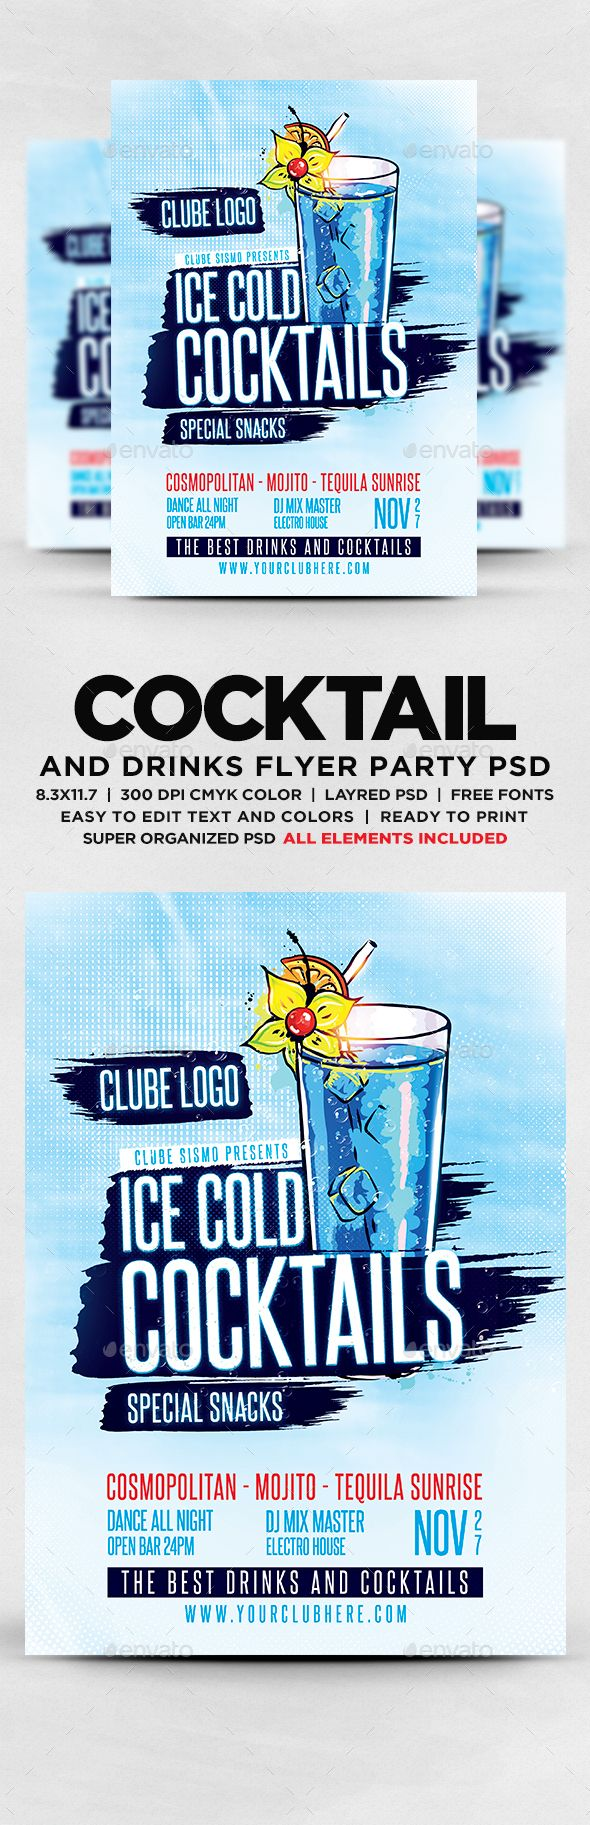 Ice Cold Cocktails Party Flyer Template PSD